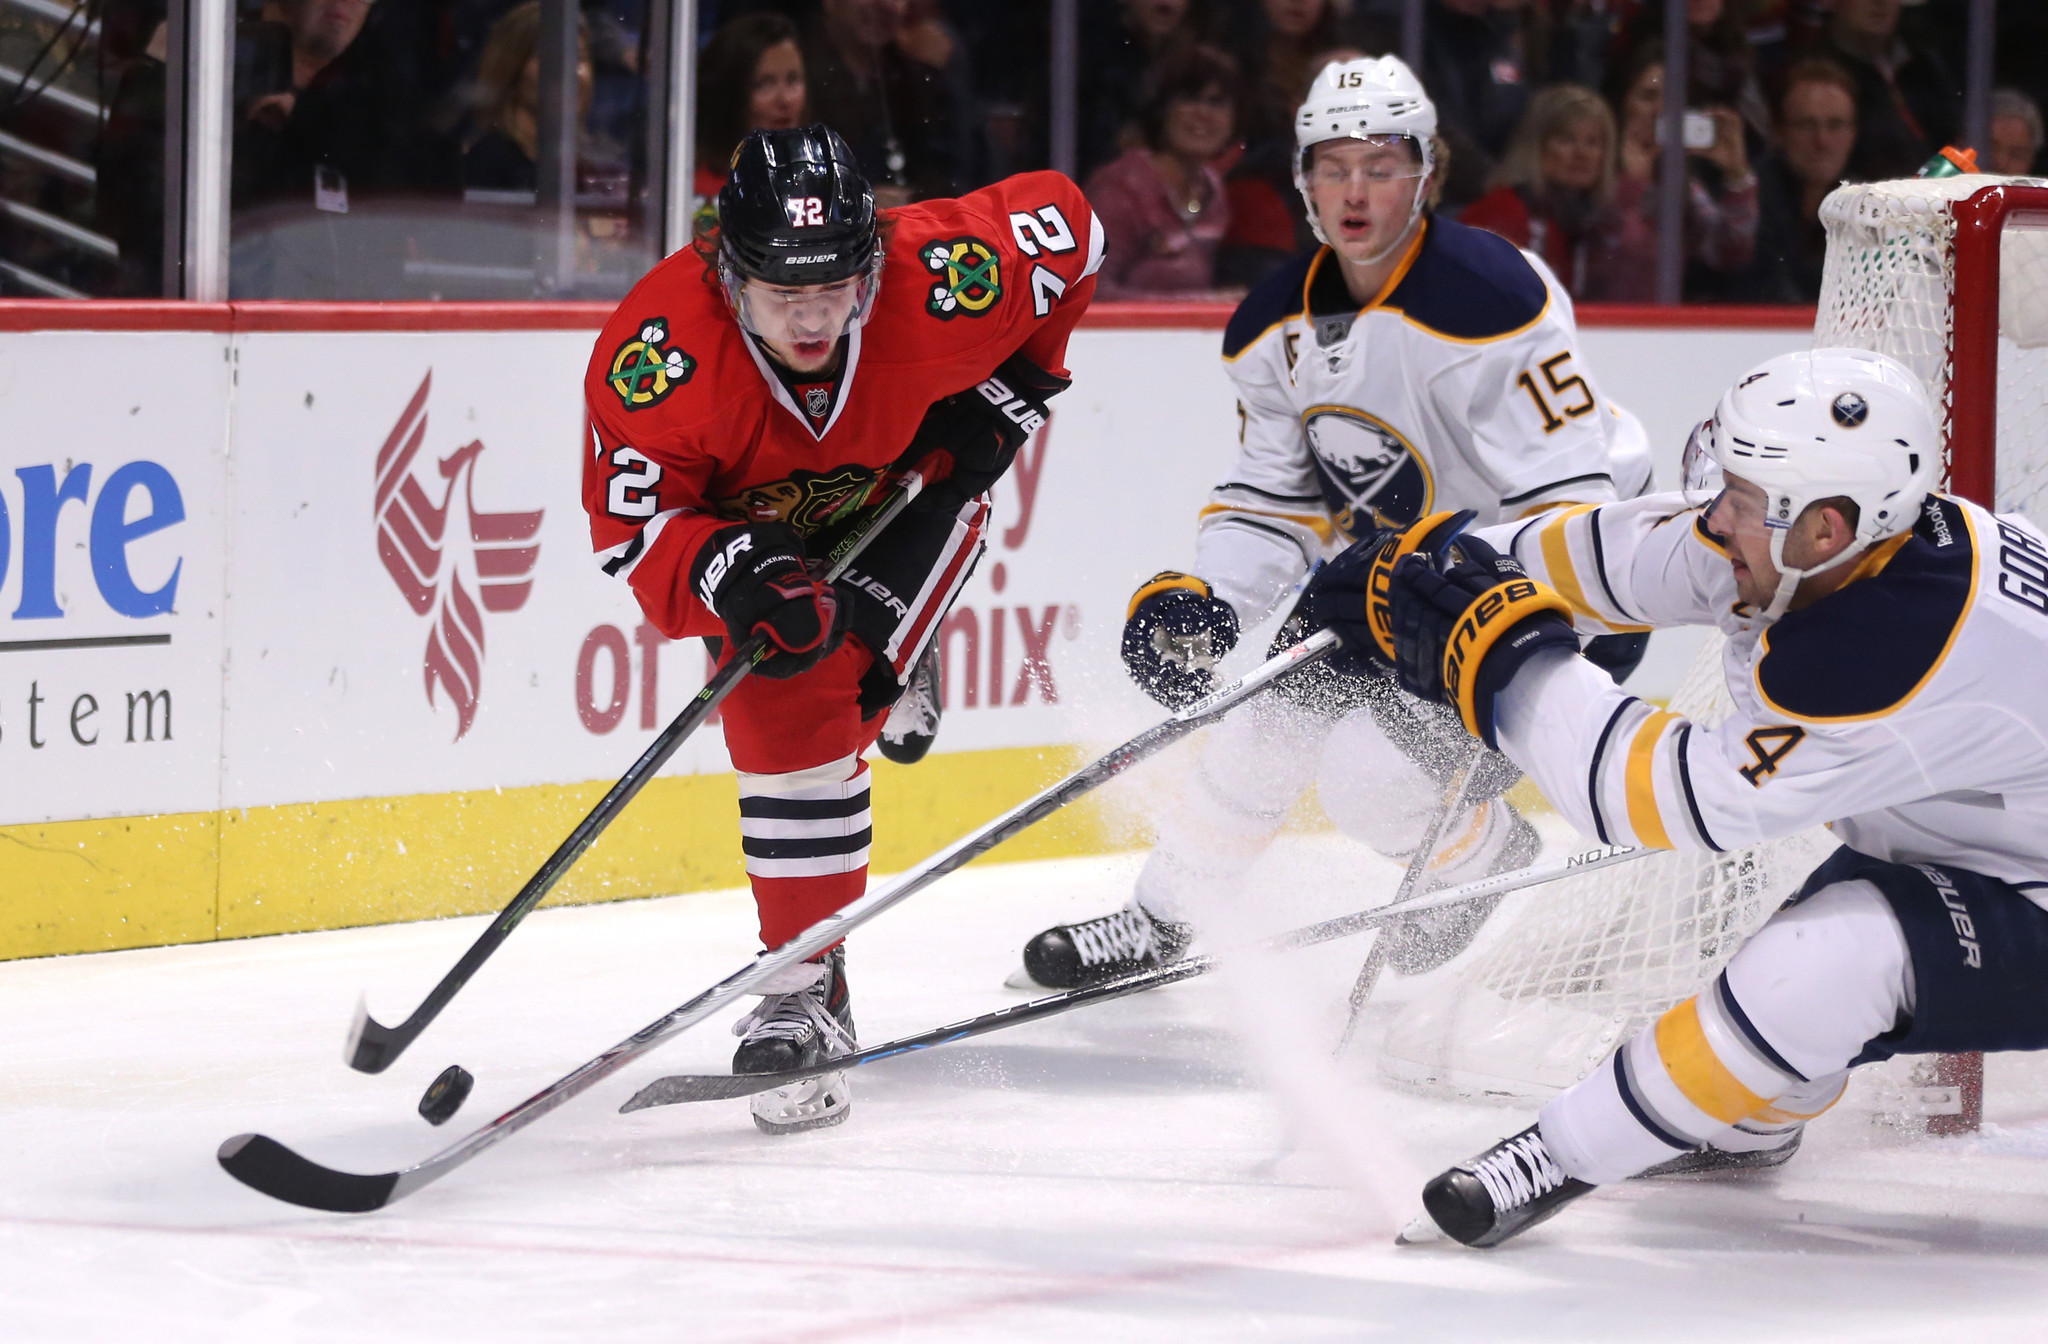 Ct-forward-depth-need-blackhawks-bits-spt-0211-20160210